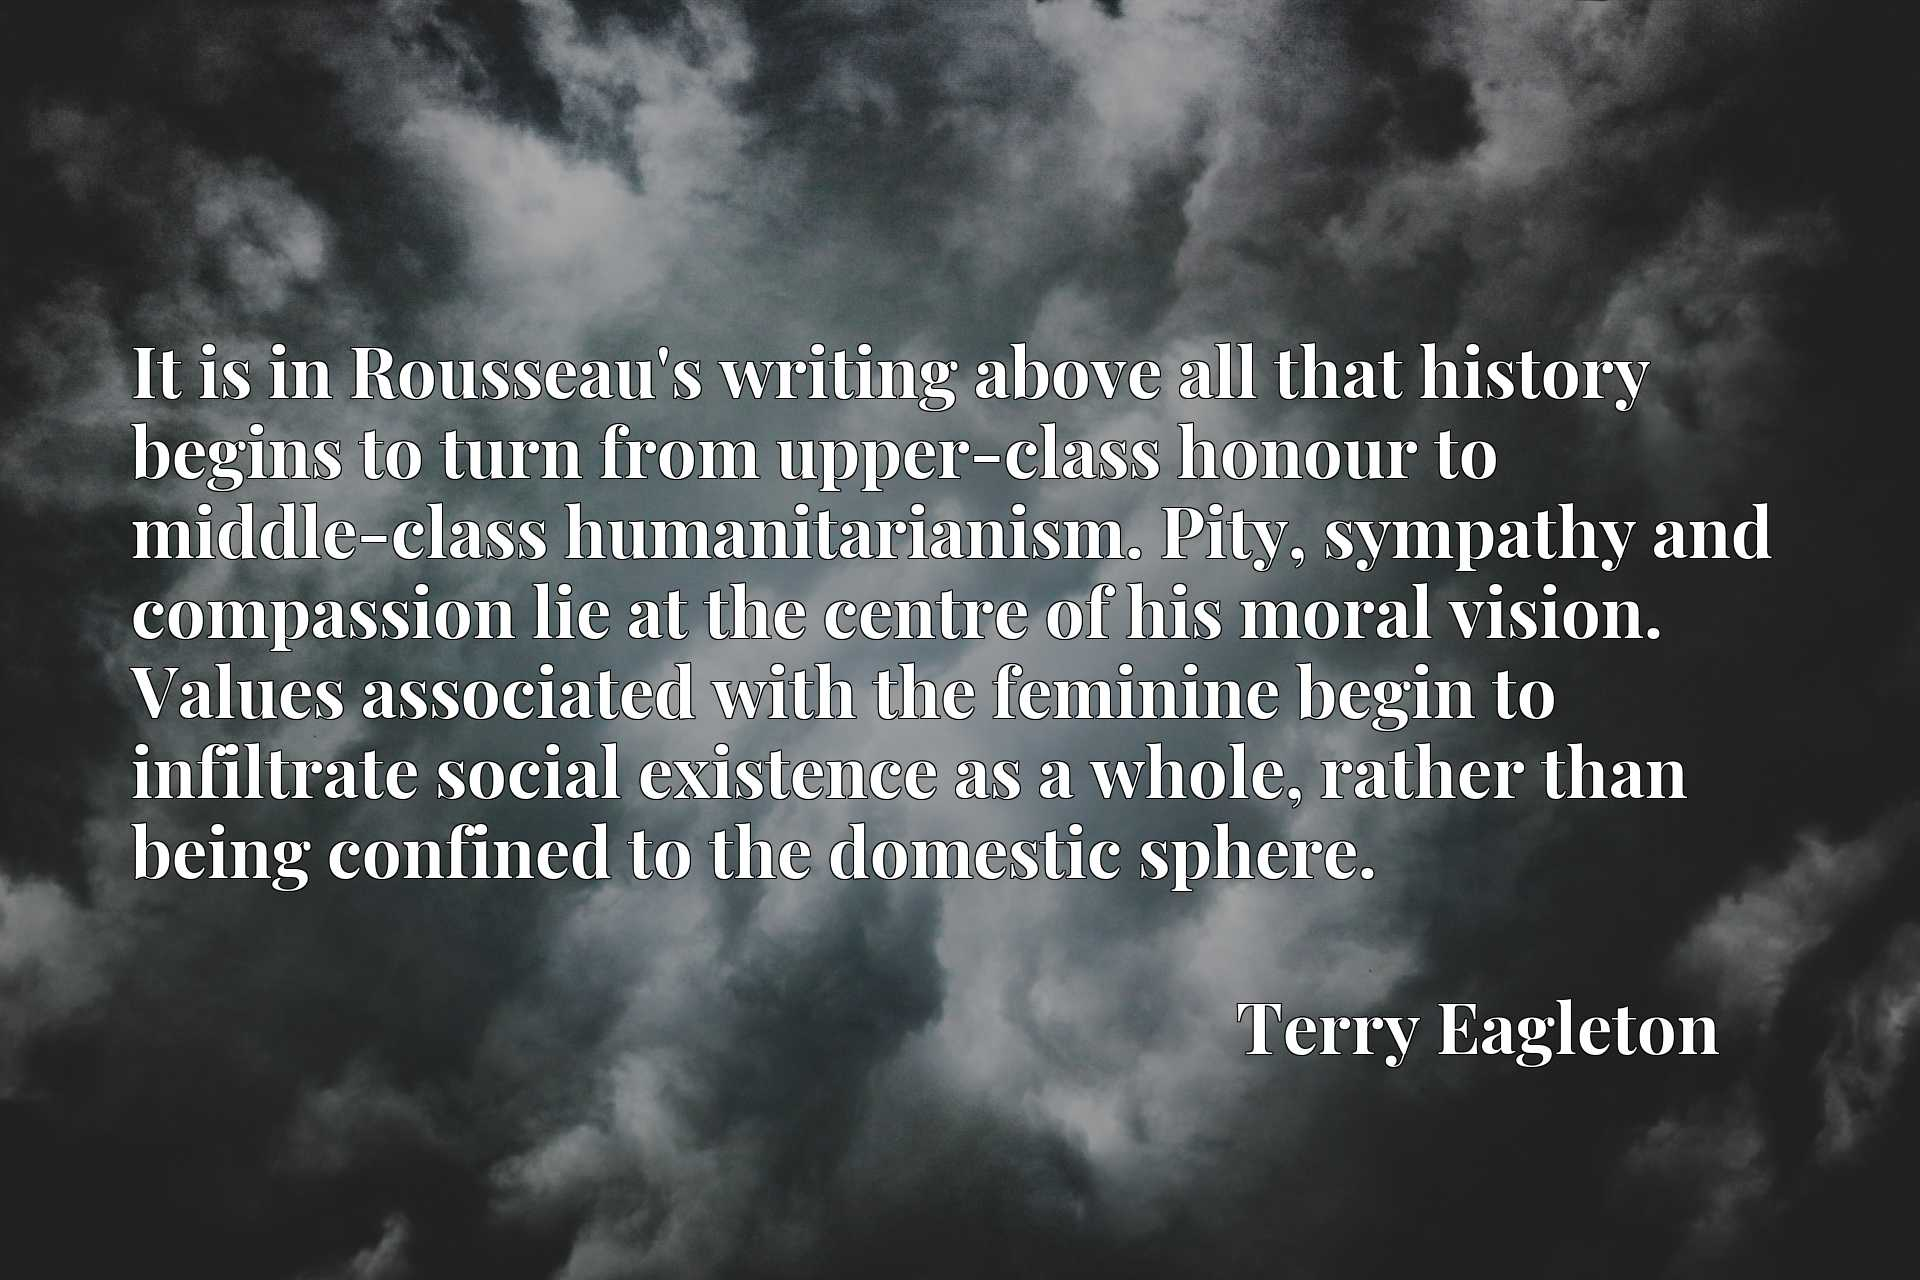 It is in Rousseau's writing above all that history begins to turn from upper-class honour to middle-class humanitarianism. Pity, sympathy and compassion lie at the centre of his moral vision. Values associated with the feminine begin to infiltrate social existence as a whole, rather than being confined to the domestic sphere.